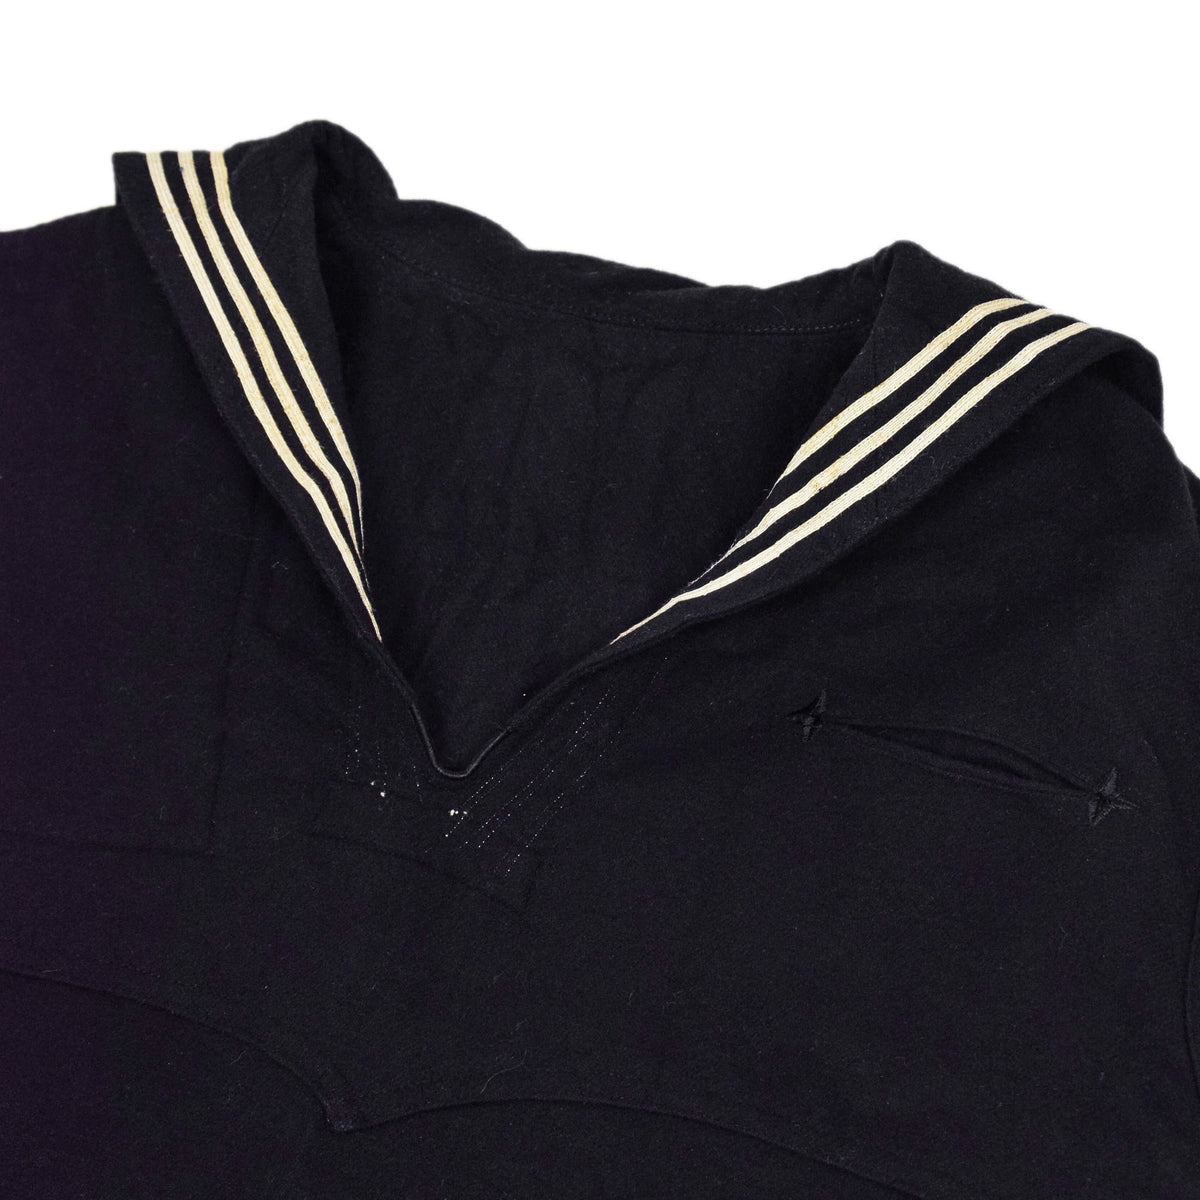 Deadstock Vintage WW2 US Navy Cracker Jack Military Wool Shirt M / L collar and pocket